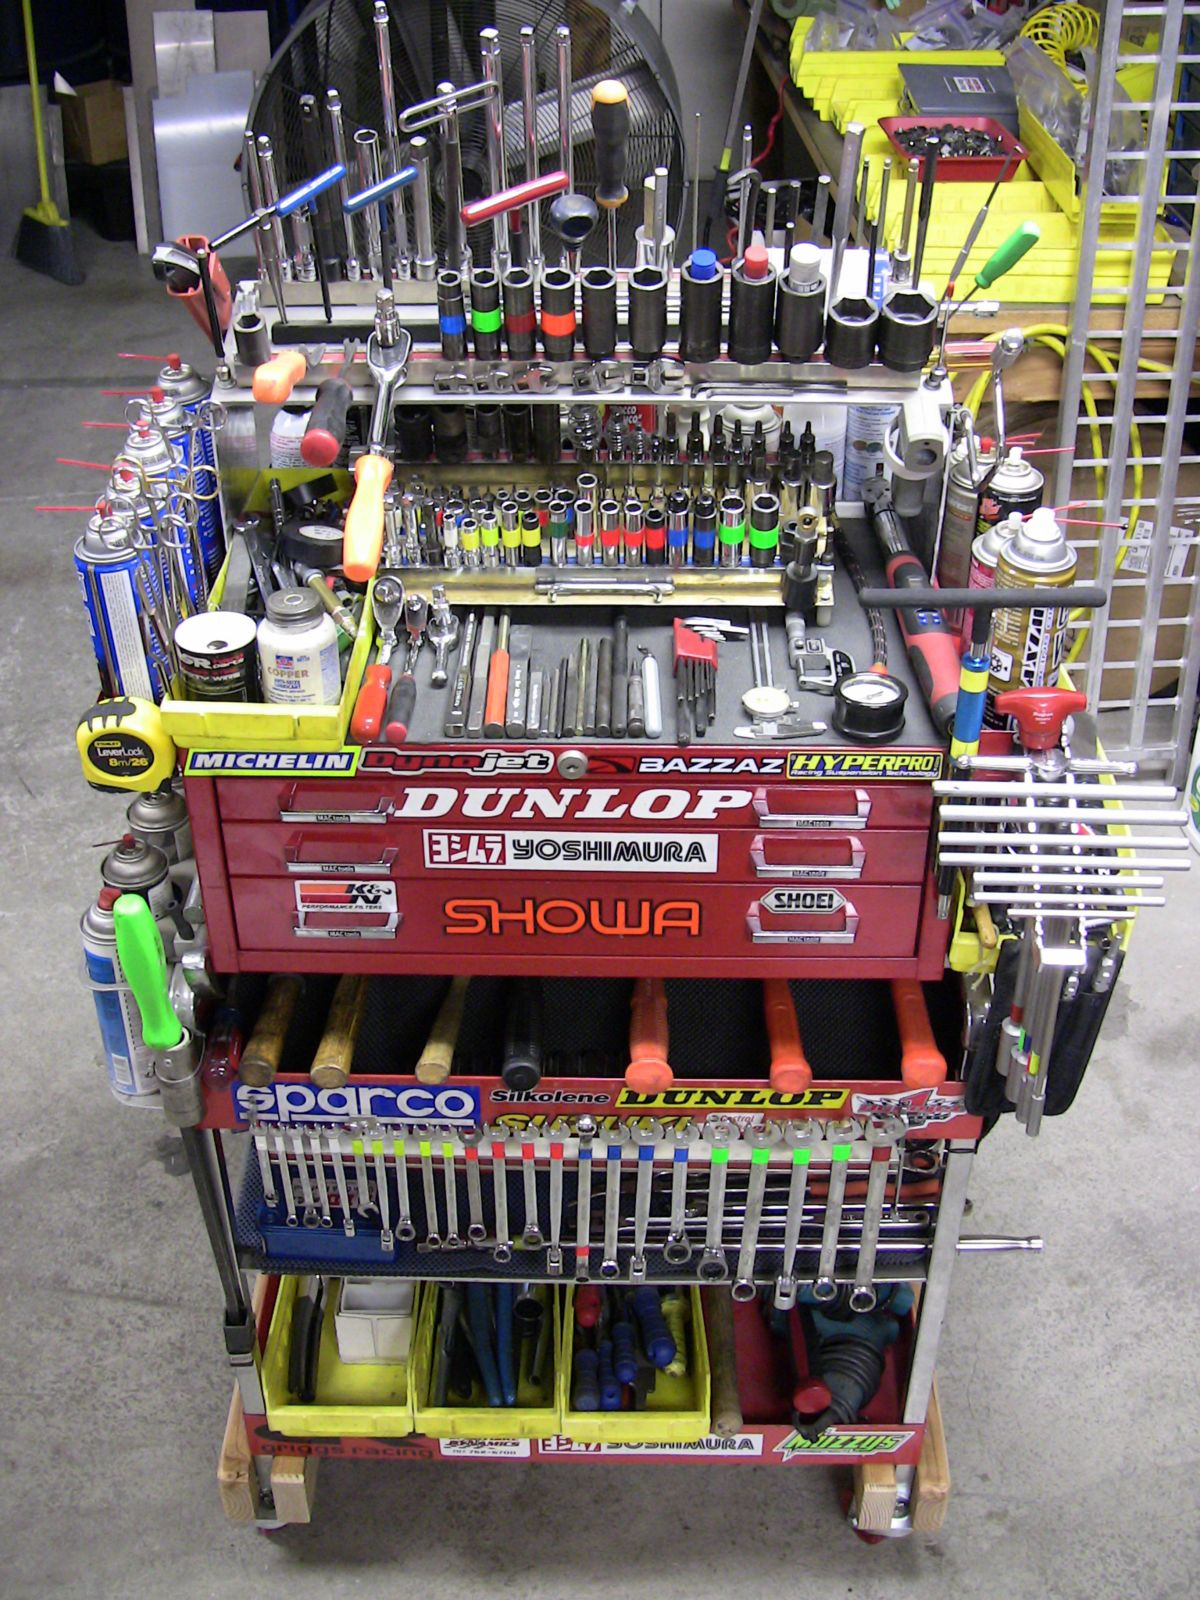 Super tuned tool cart pics motorcycle purposed the for Home mechanic garage layout ideas